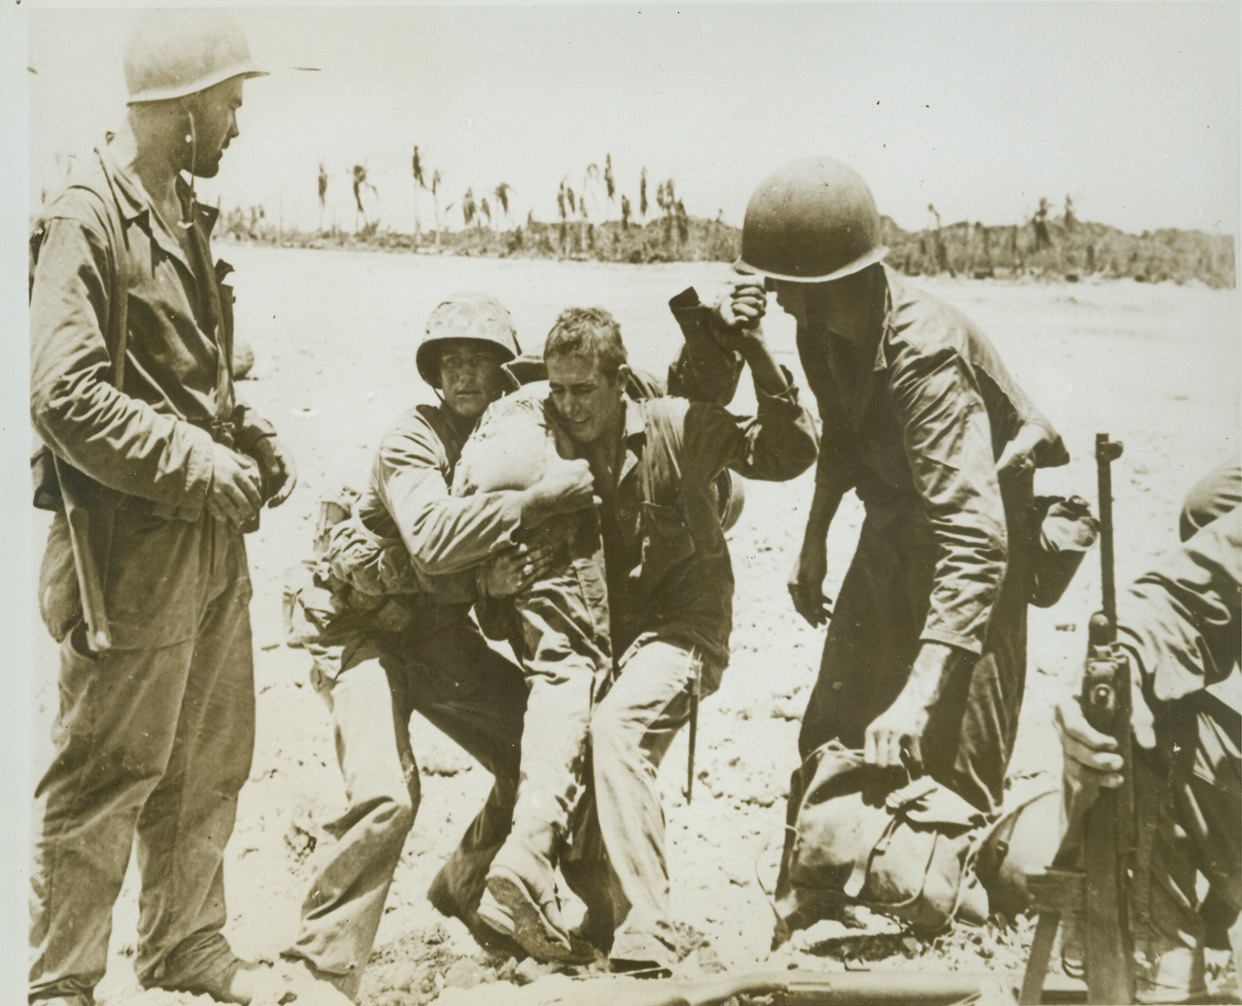 His Buddies to the Rescue, 8/6/1944. GUAM -- A Leatherneck swings a fellow Marine, who was hit by a Jap bullet in fierce fighting for an airstrip near Orote, to his shoulder and other Marines clear the way for him as they carry the wounded man back to an emergency station. Credit (ACME) (WP);